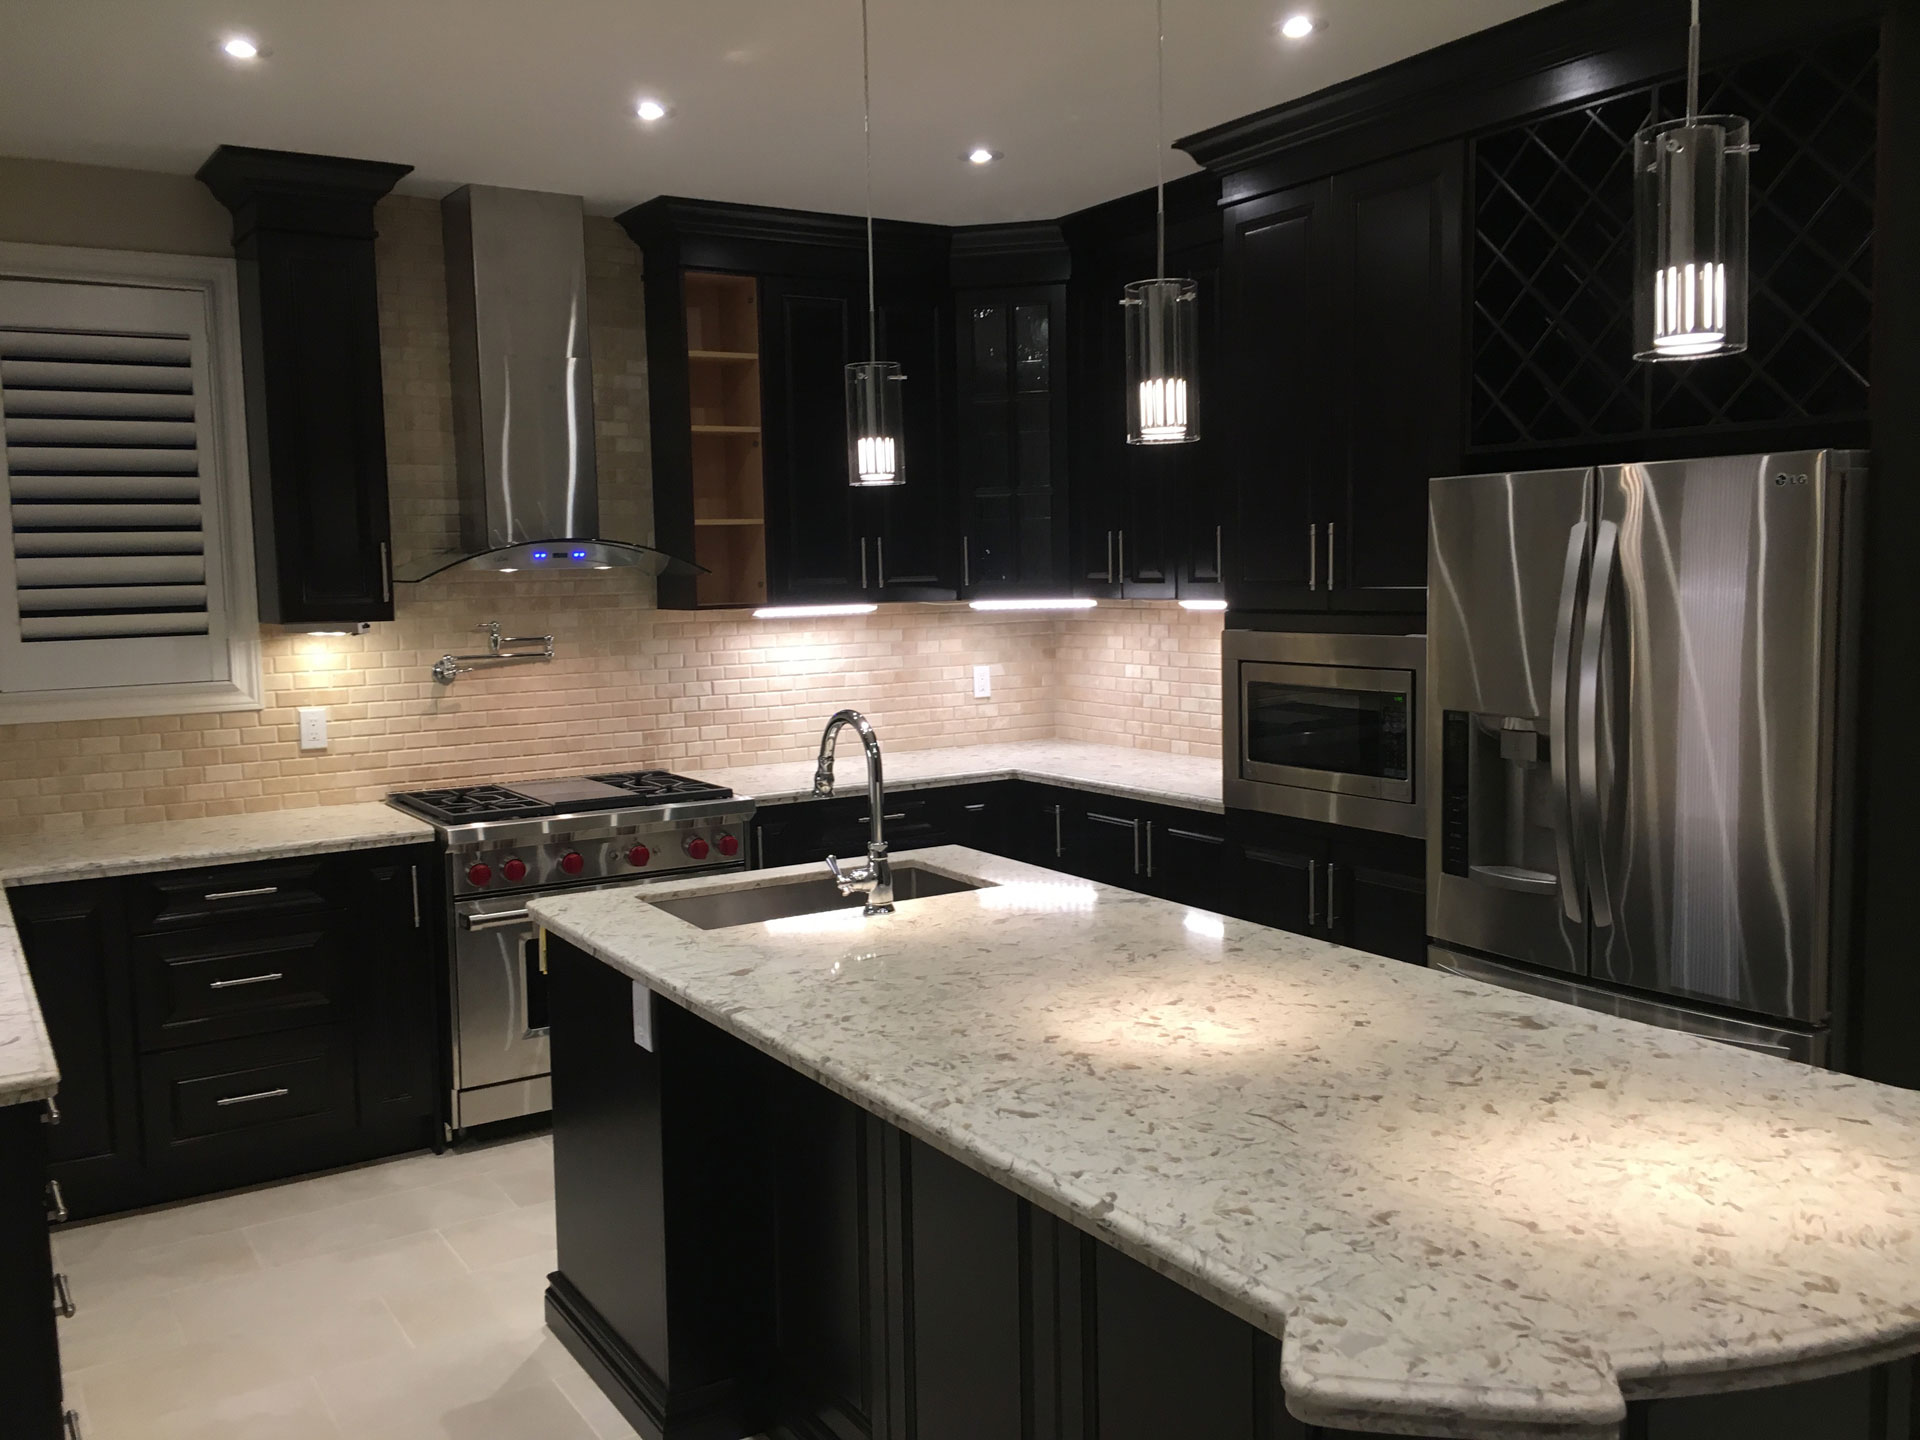 Kitchen Cabinetry Trends 2019 Sharp Cabinetry